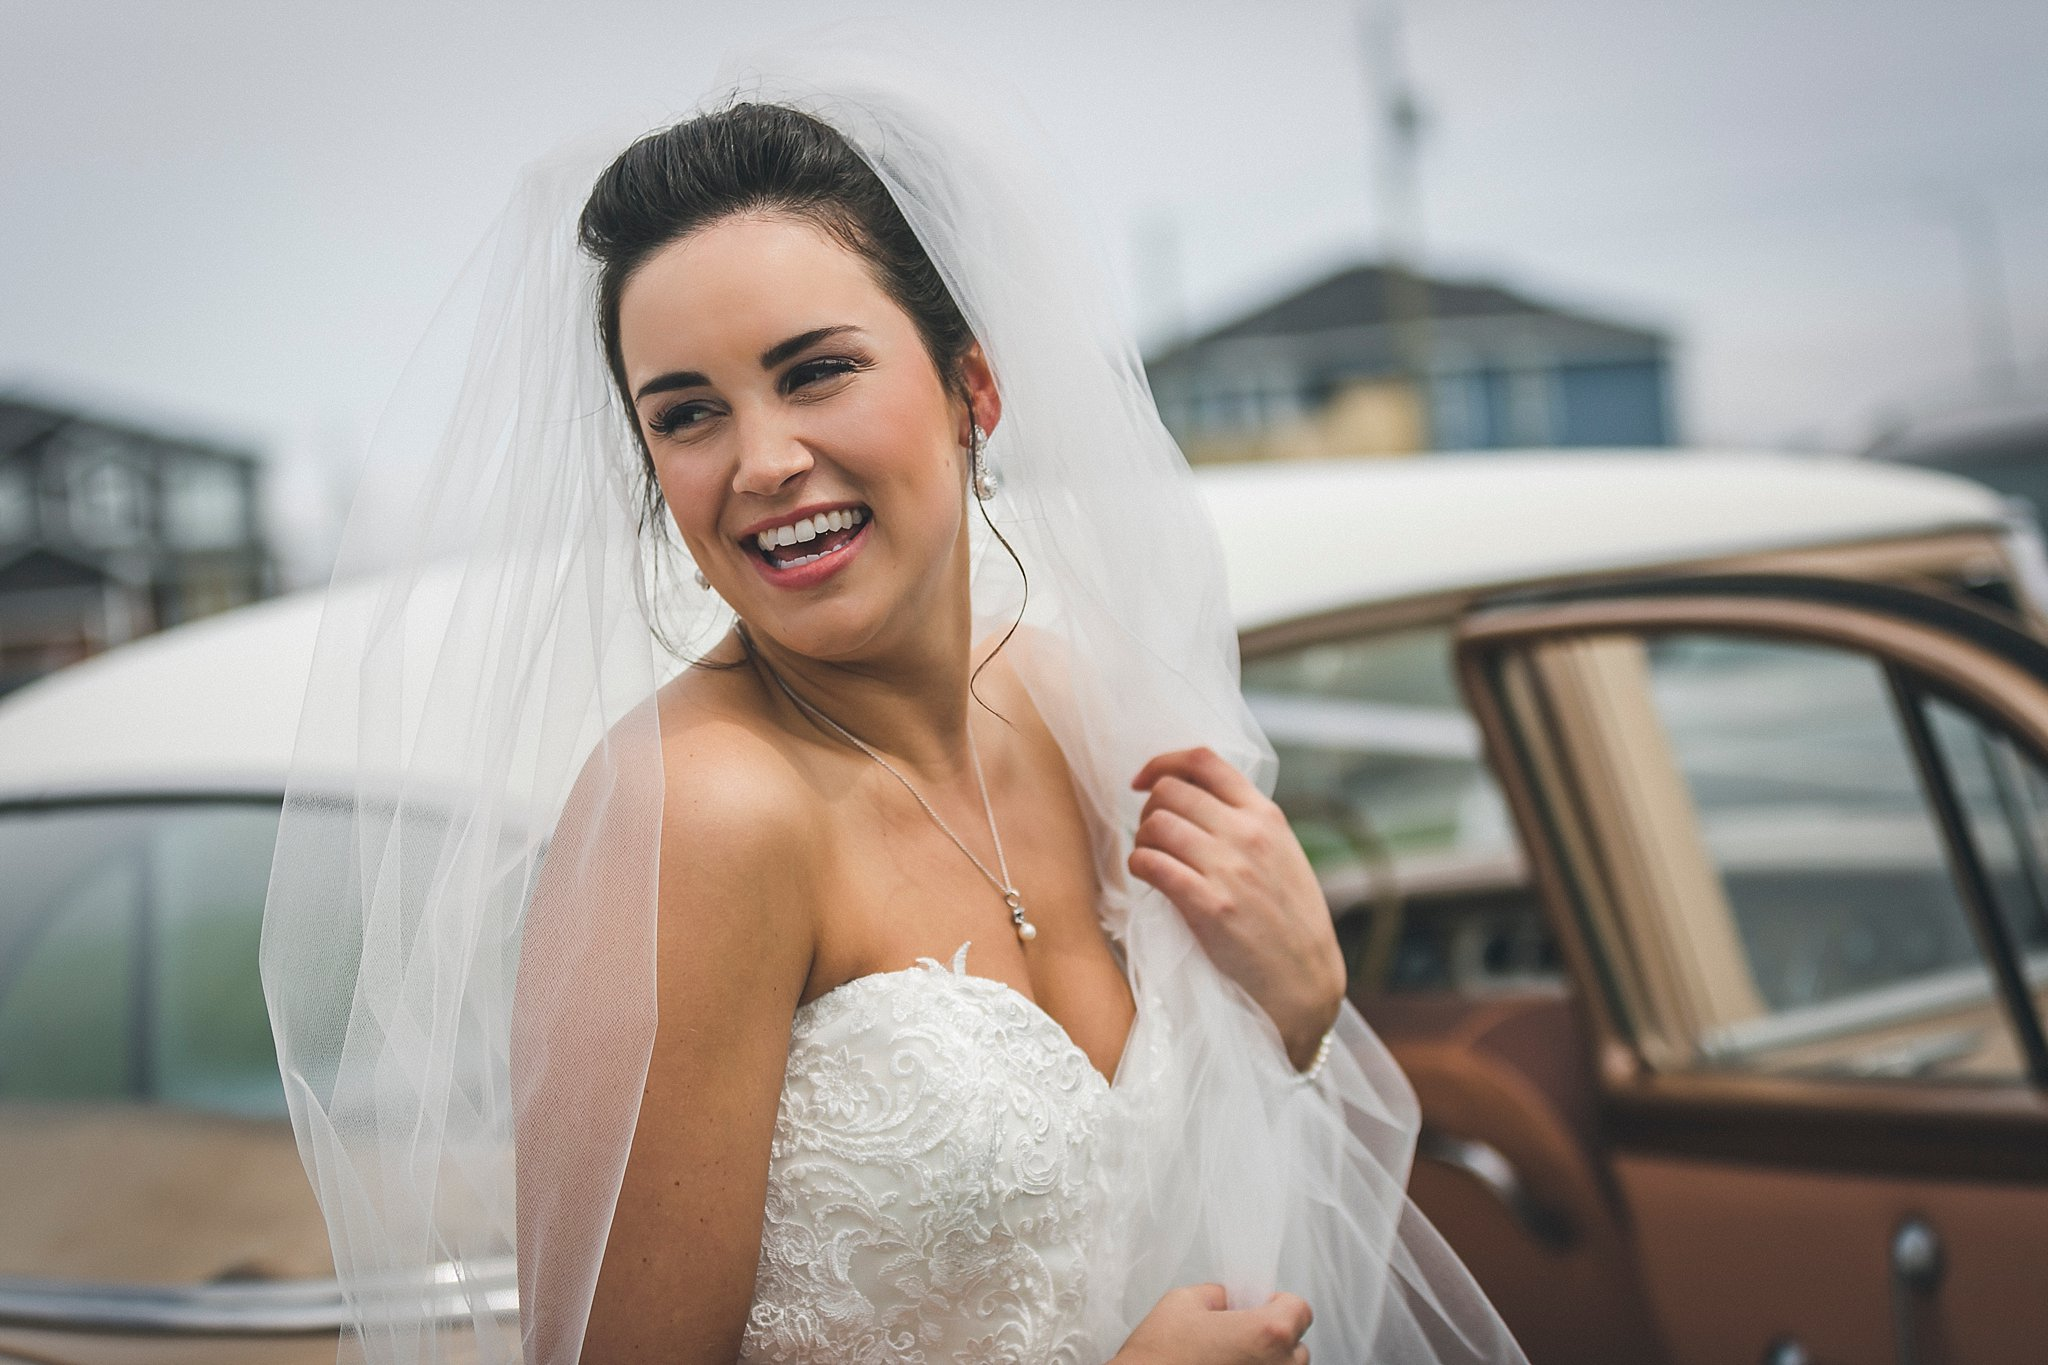 Stunning image of bride waiting to go to her St. John's, Newfoundland wedding in a Maggie Sottero wedding dress.